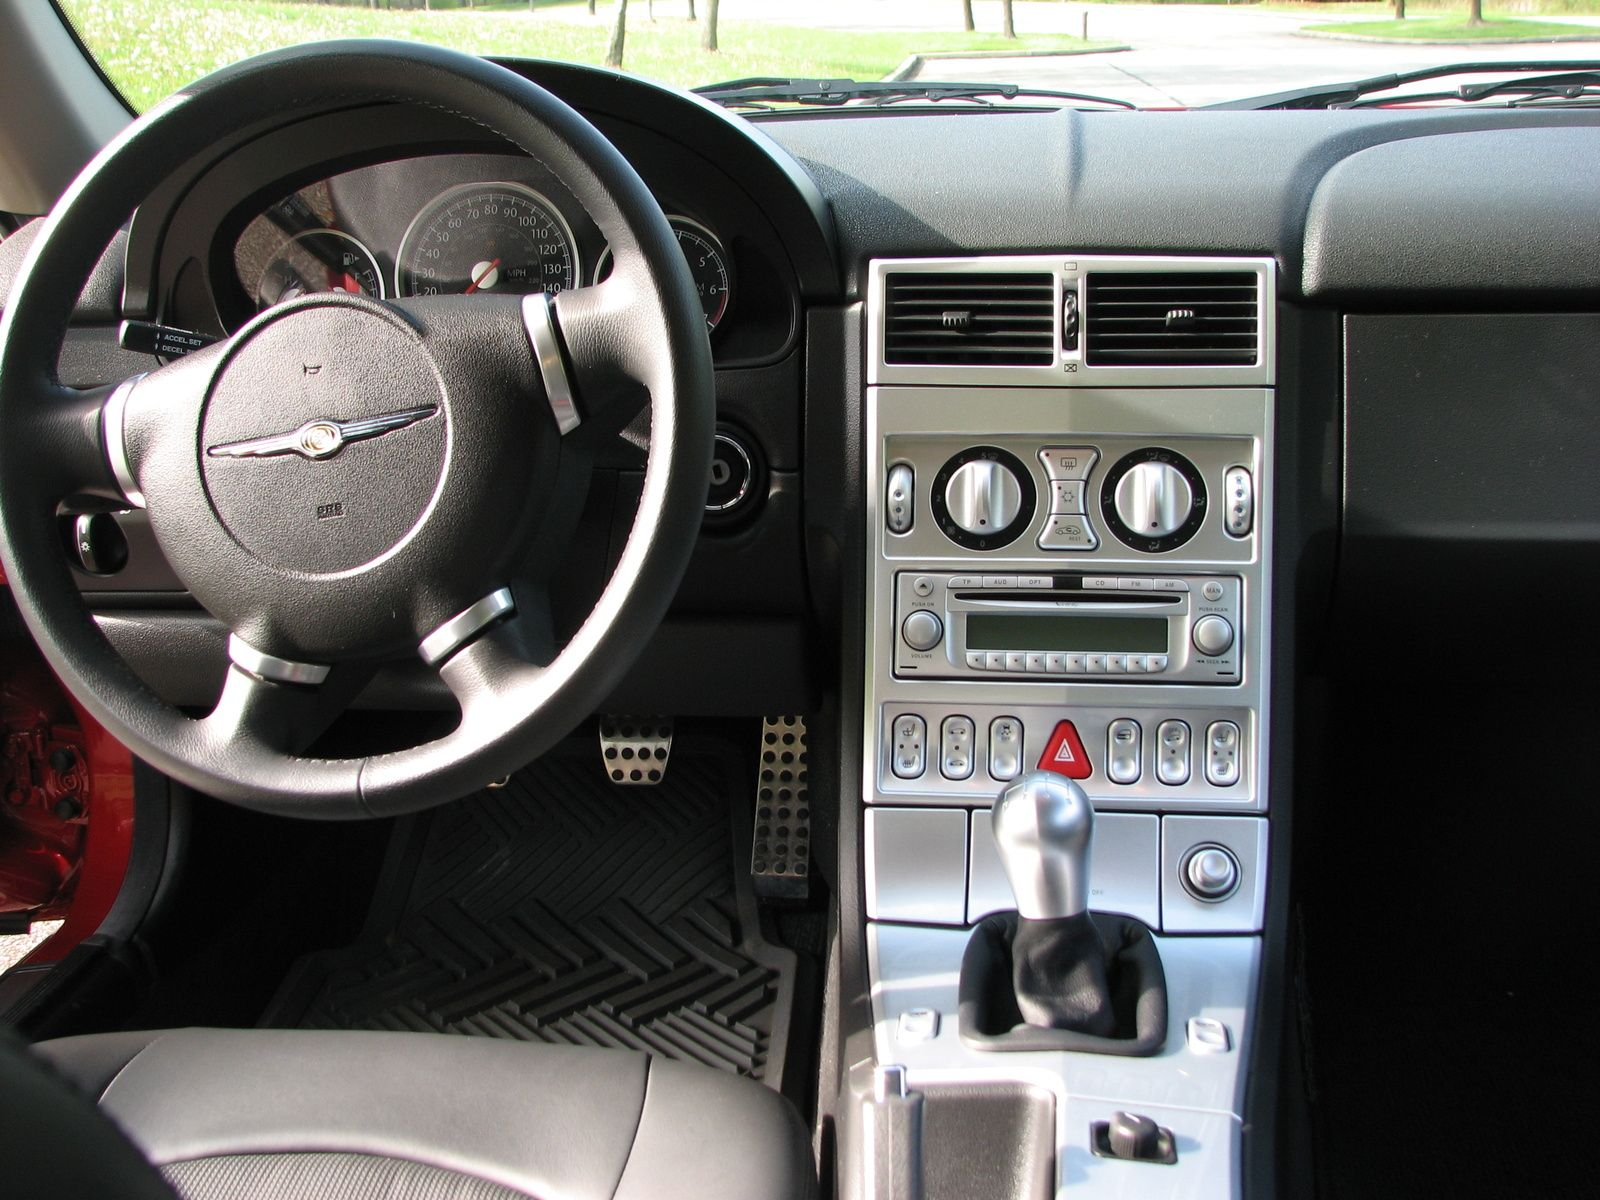 Chrysler Crossfire Interior With Images Chrysler Crossfire